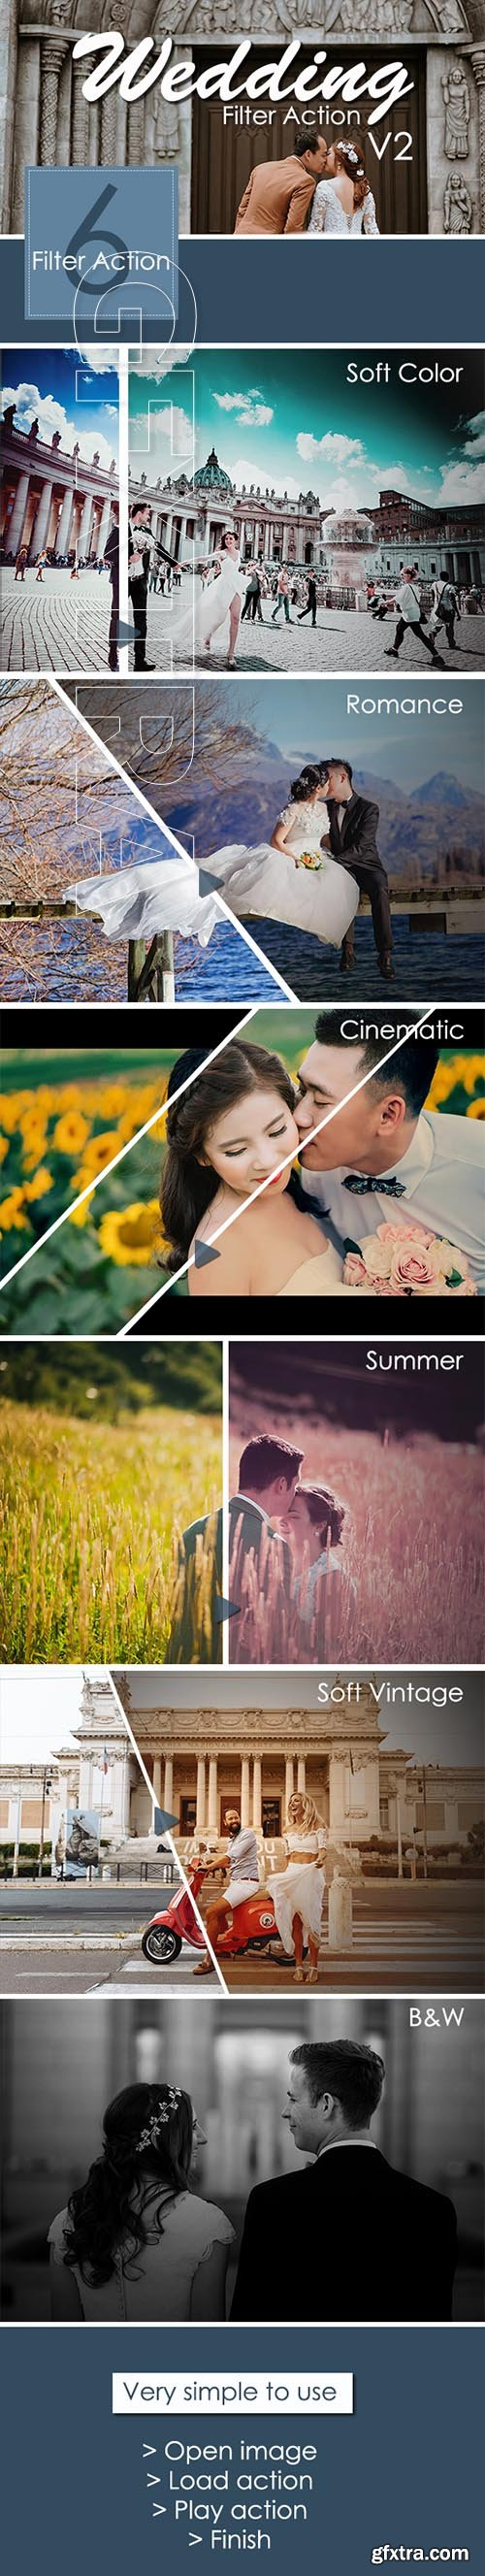 GraphicRiver - Wedding Filter Action V2 22371181